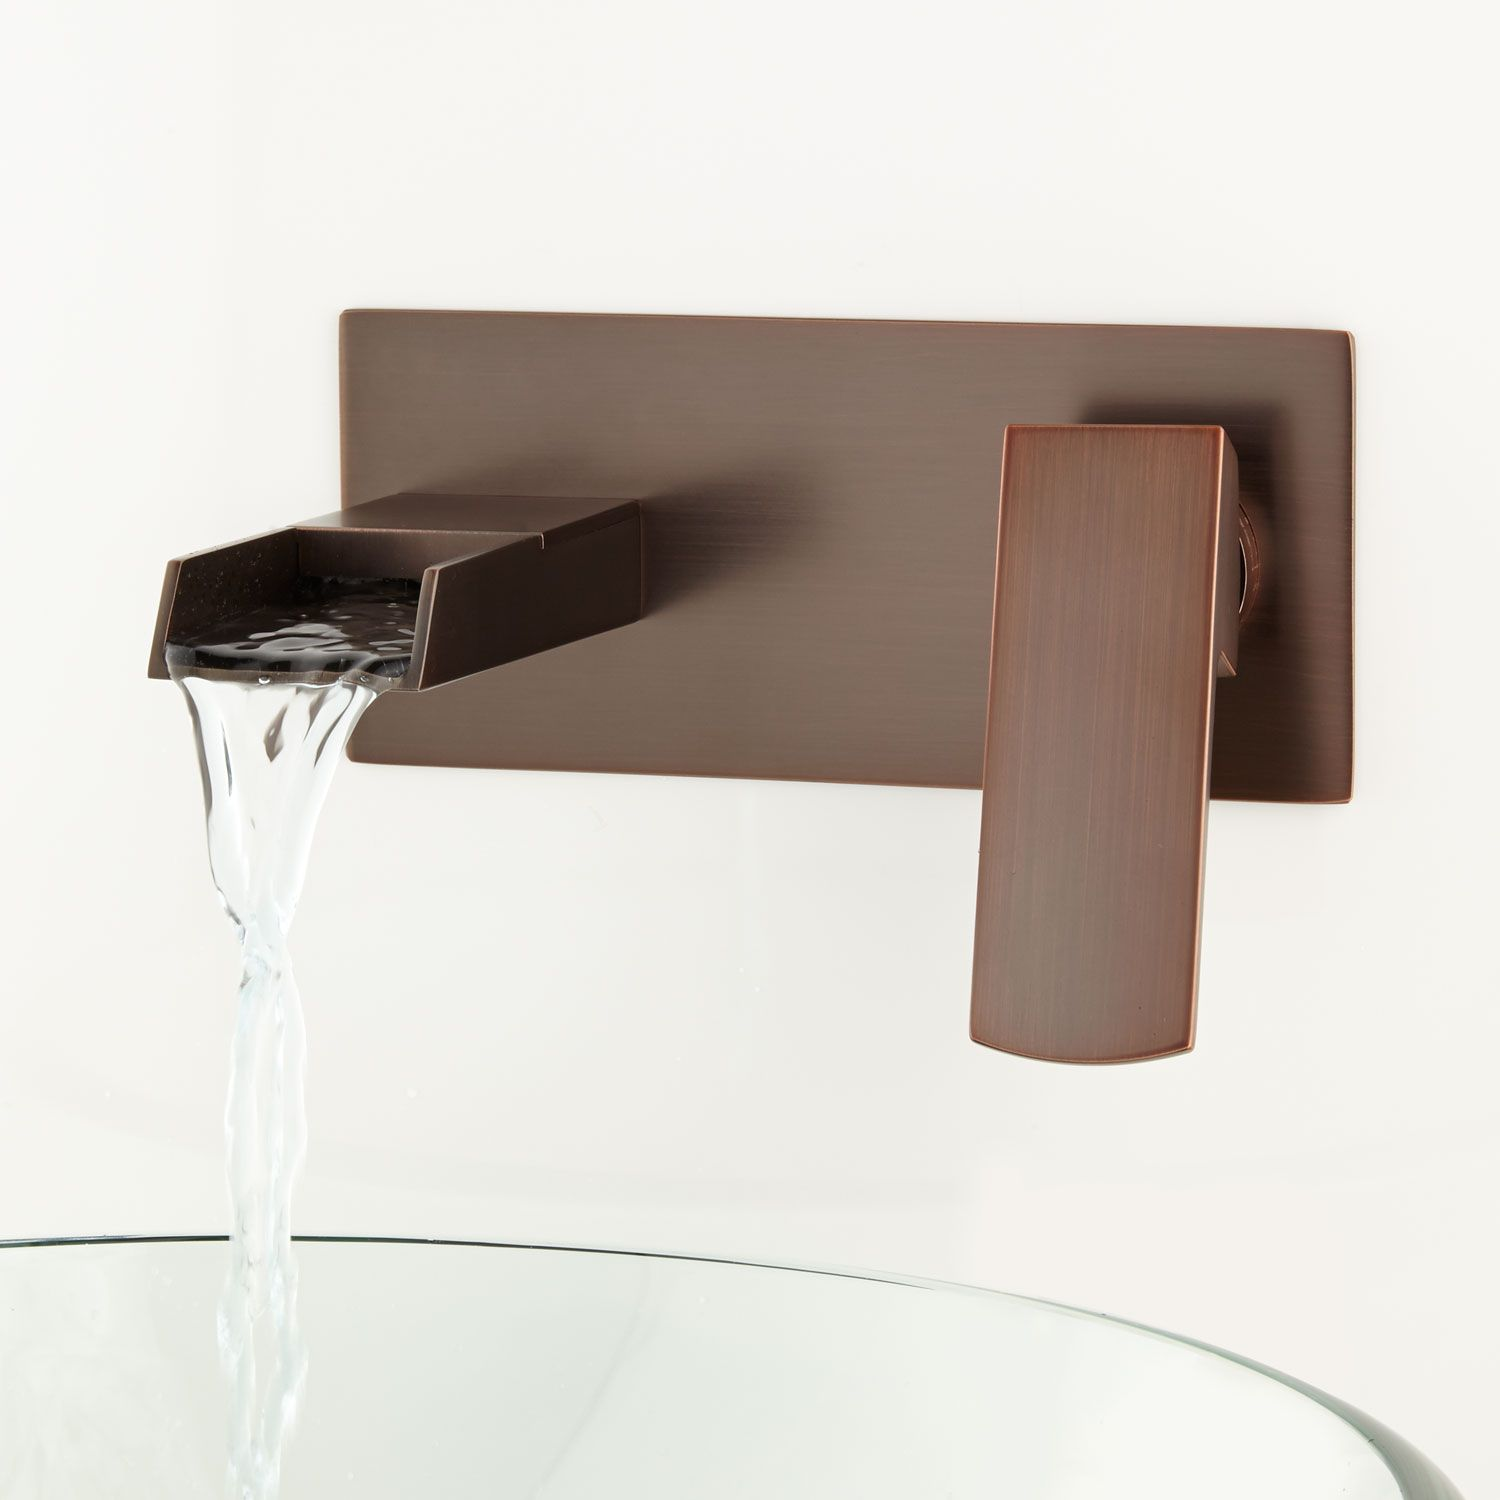 Broeg Wall Mount Waterfall Faucet No Overflow Oil Rubbed